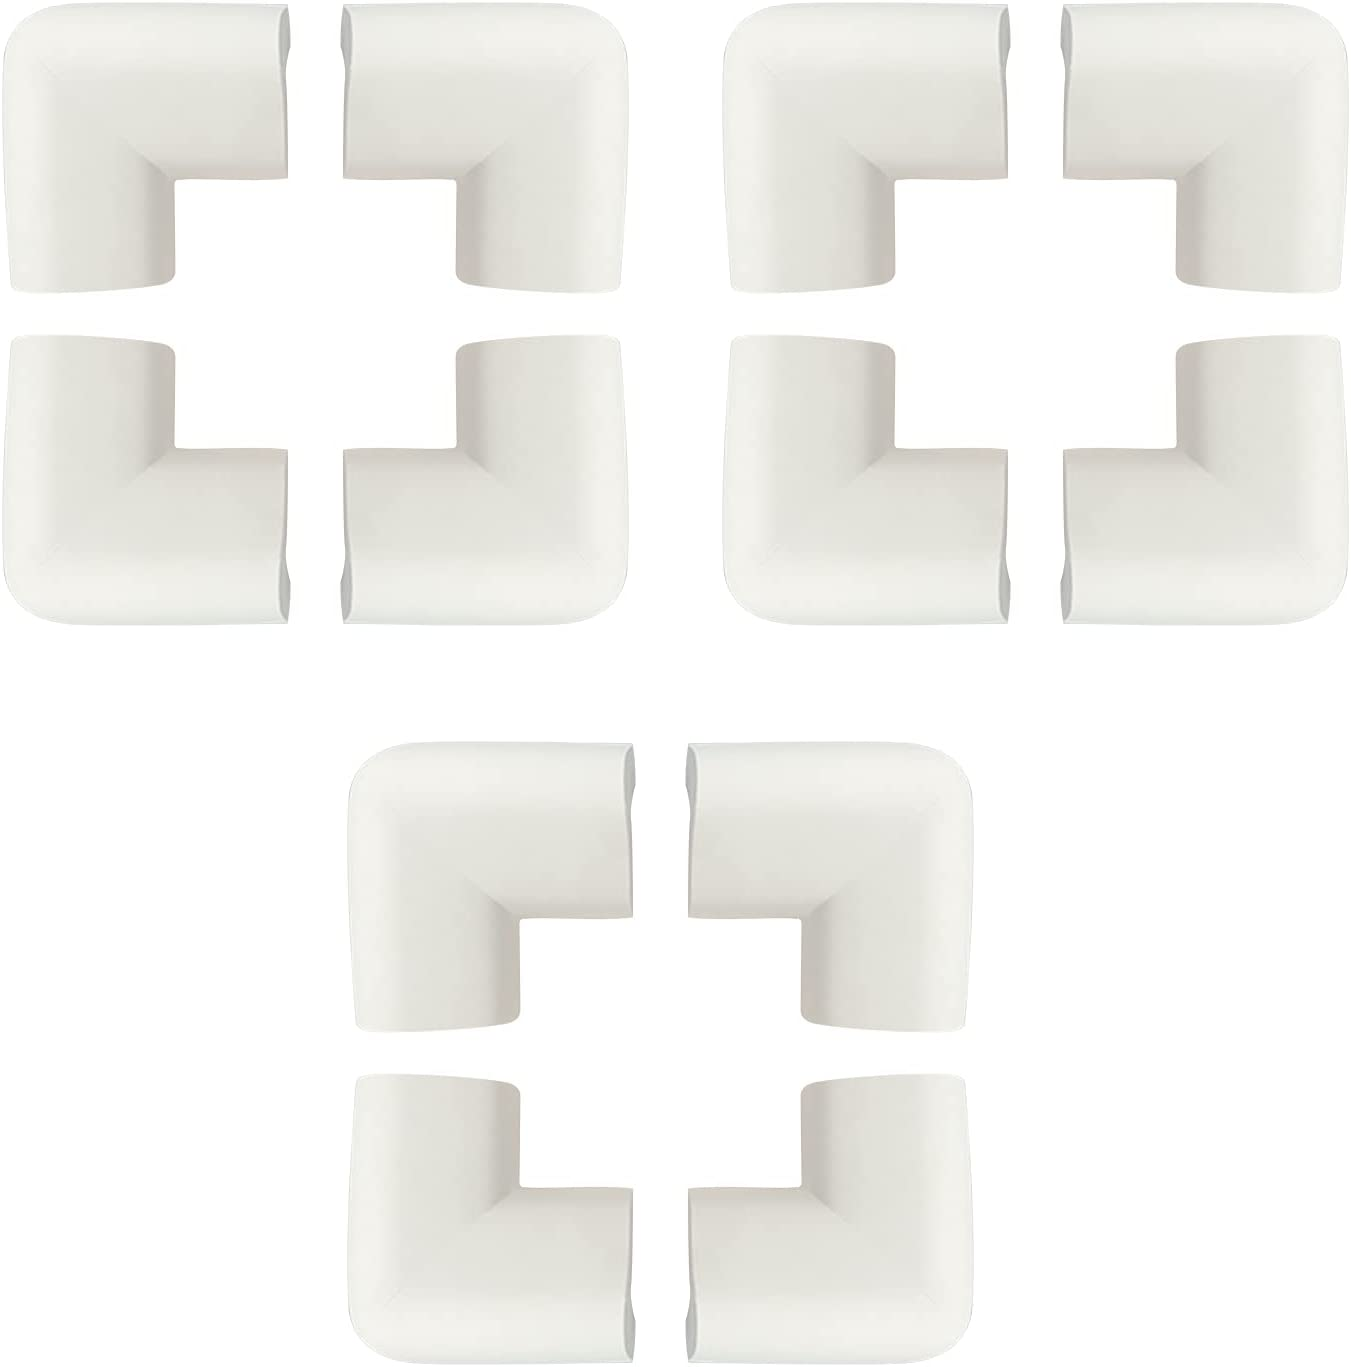 JANEMO 12 Pcs Baby Proofing Edge Corner Protector,6M Anti-Collision Durable Table Bumper Guard,Used for Home,School,Office,Early Childhood Training Room,White